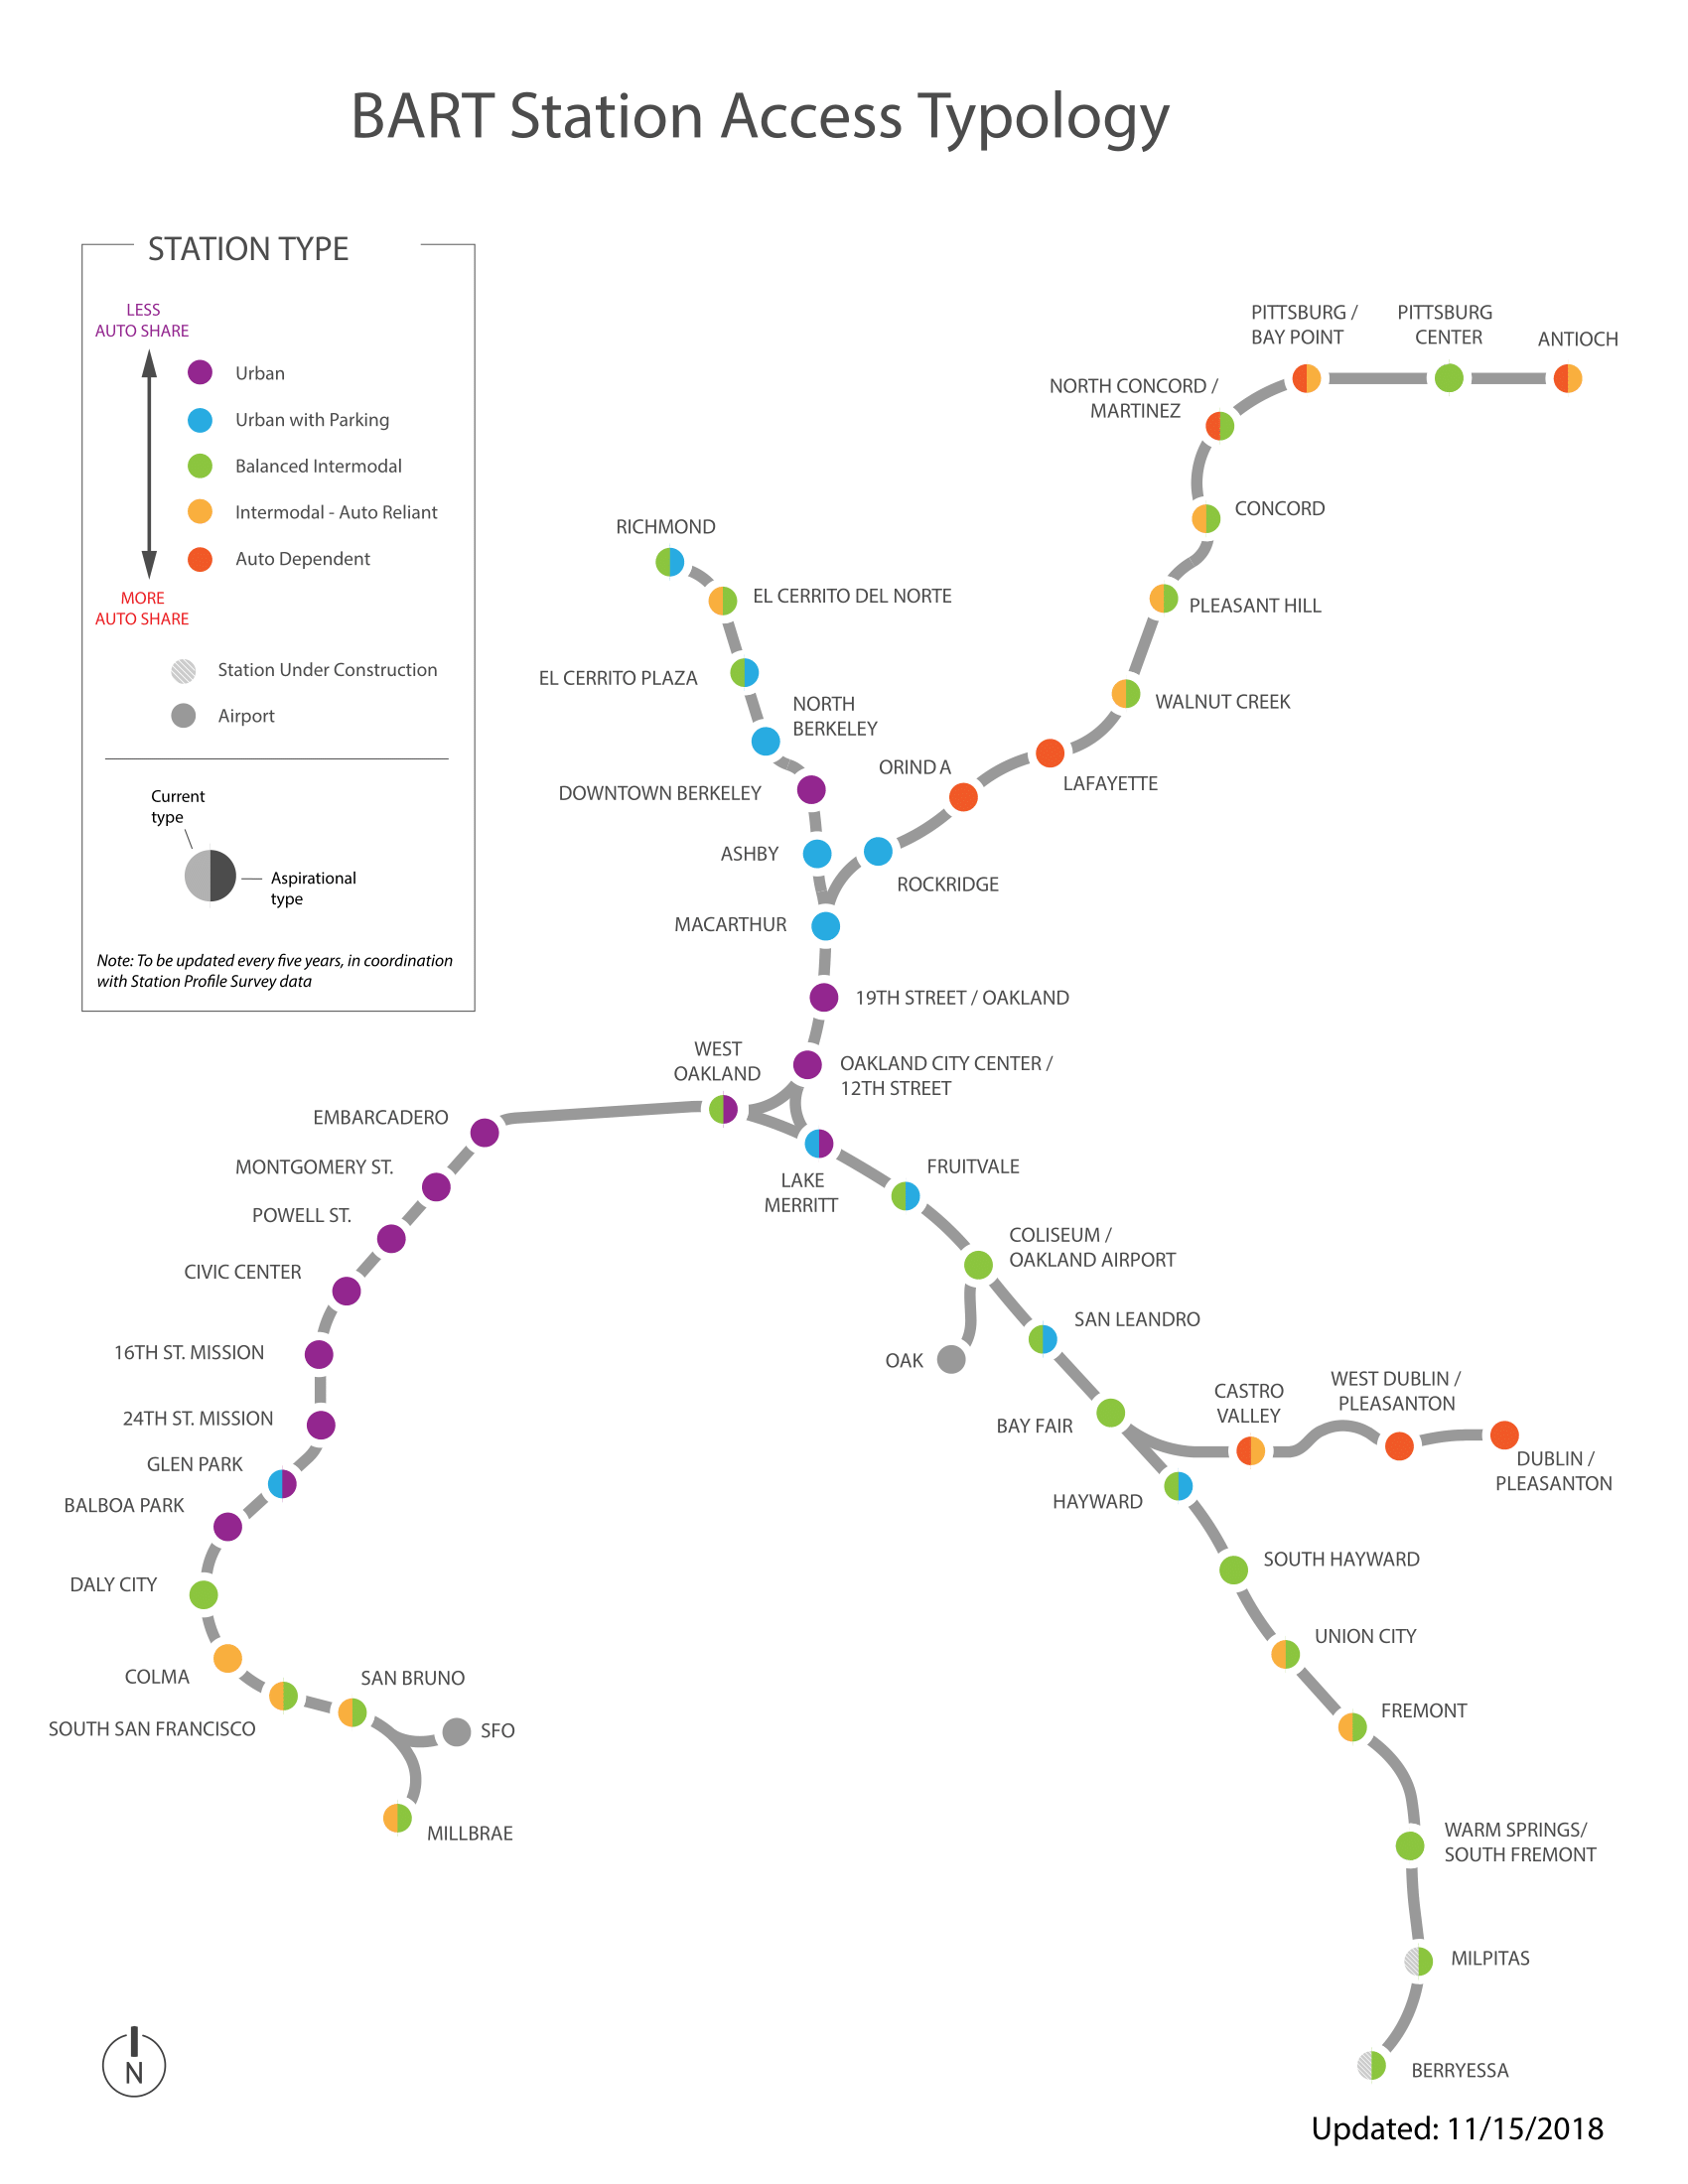 Station Access Typology Map